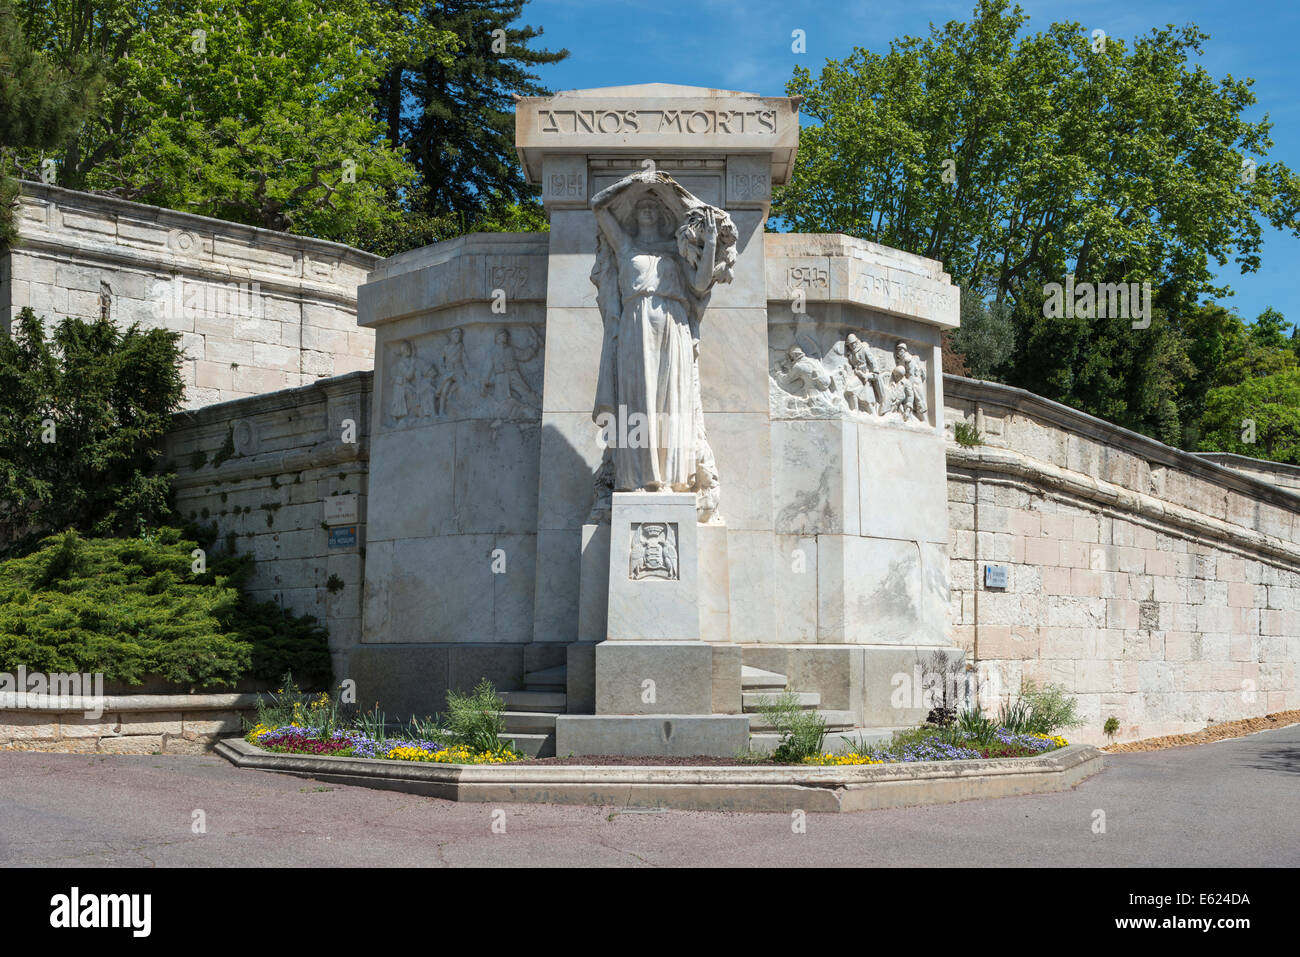 Monument to the dead of the wars in the 20th century, public garden on the Rocher des Domes rock, Avignon - Stock Image